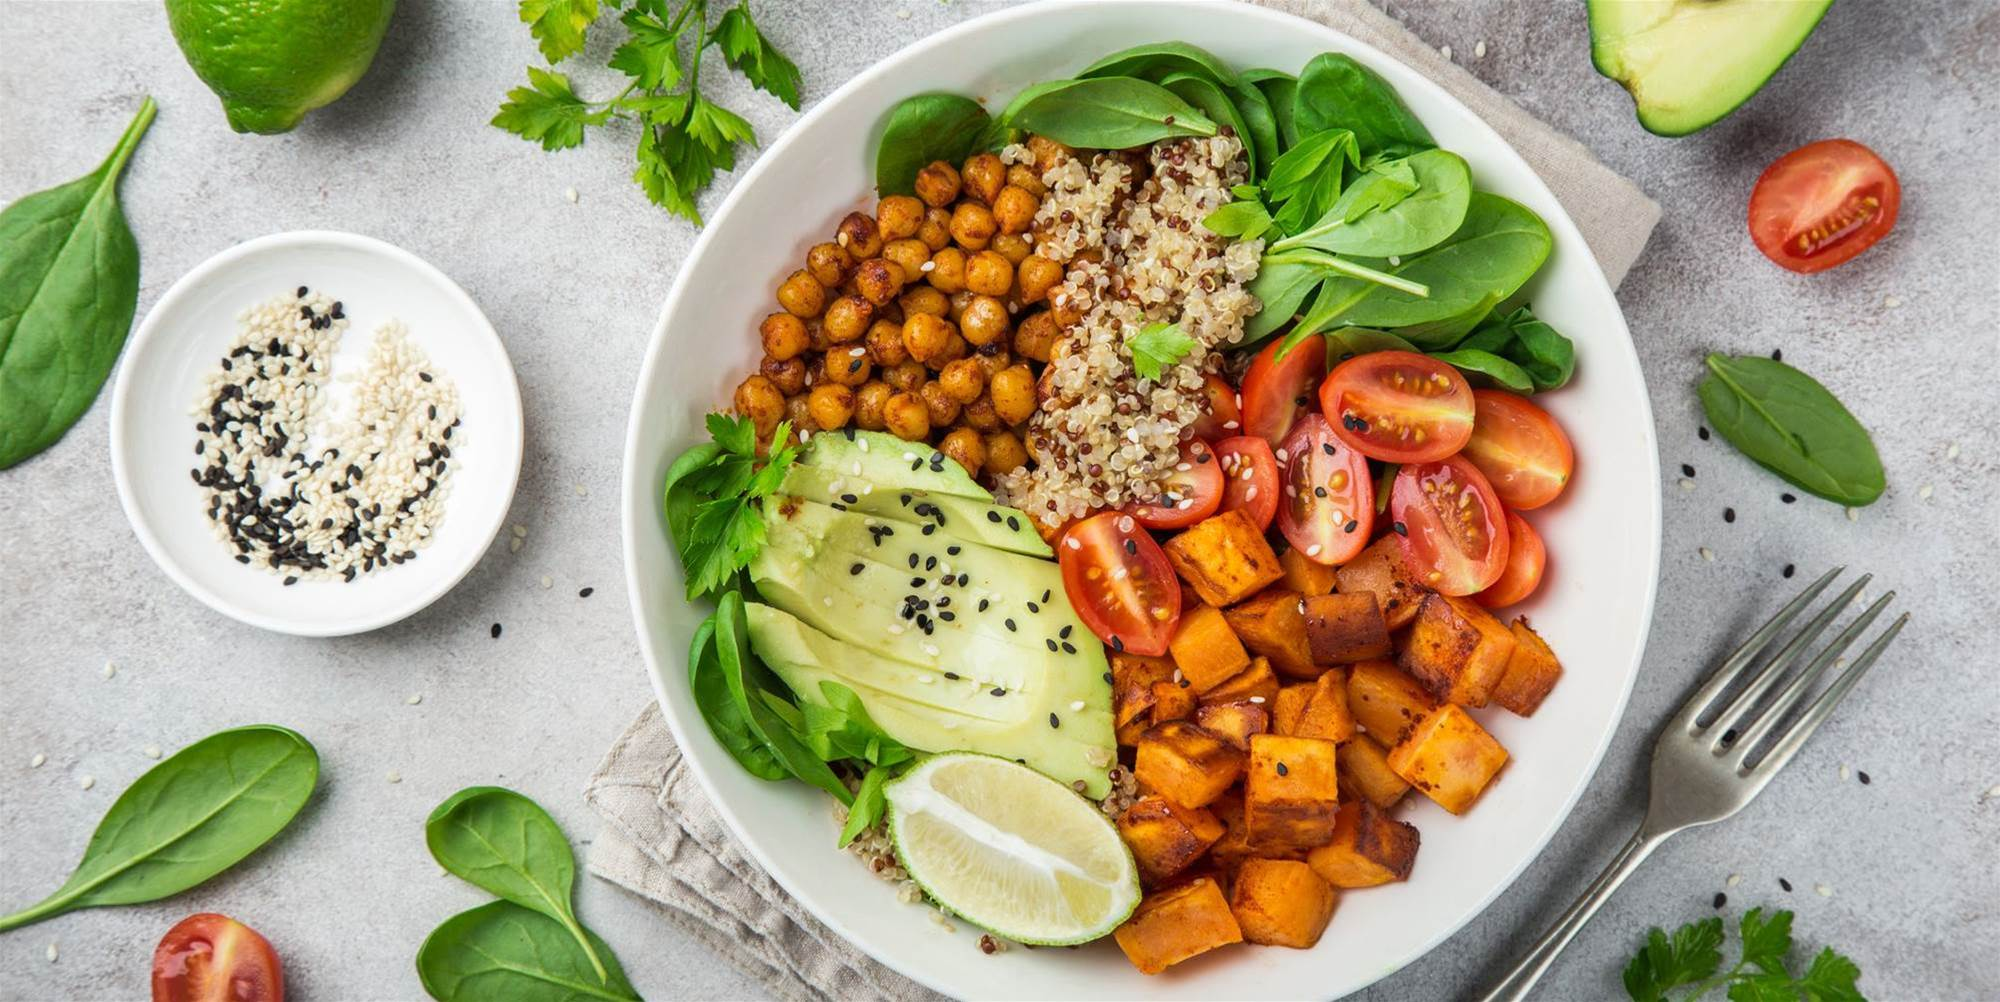 The 8 Best Plant-Based Sources of Complete Protein